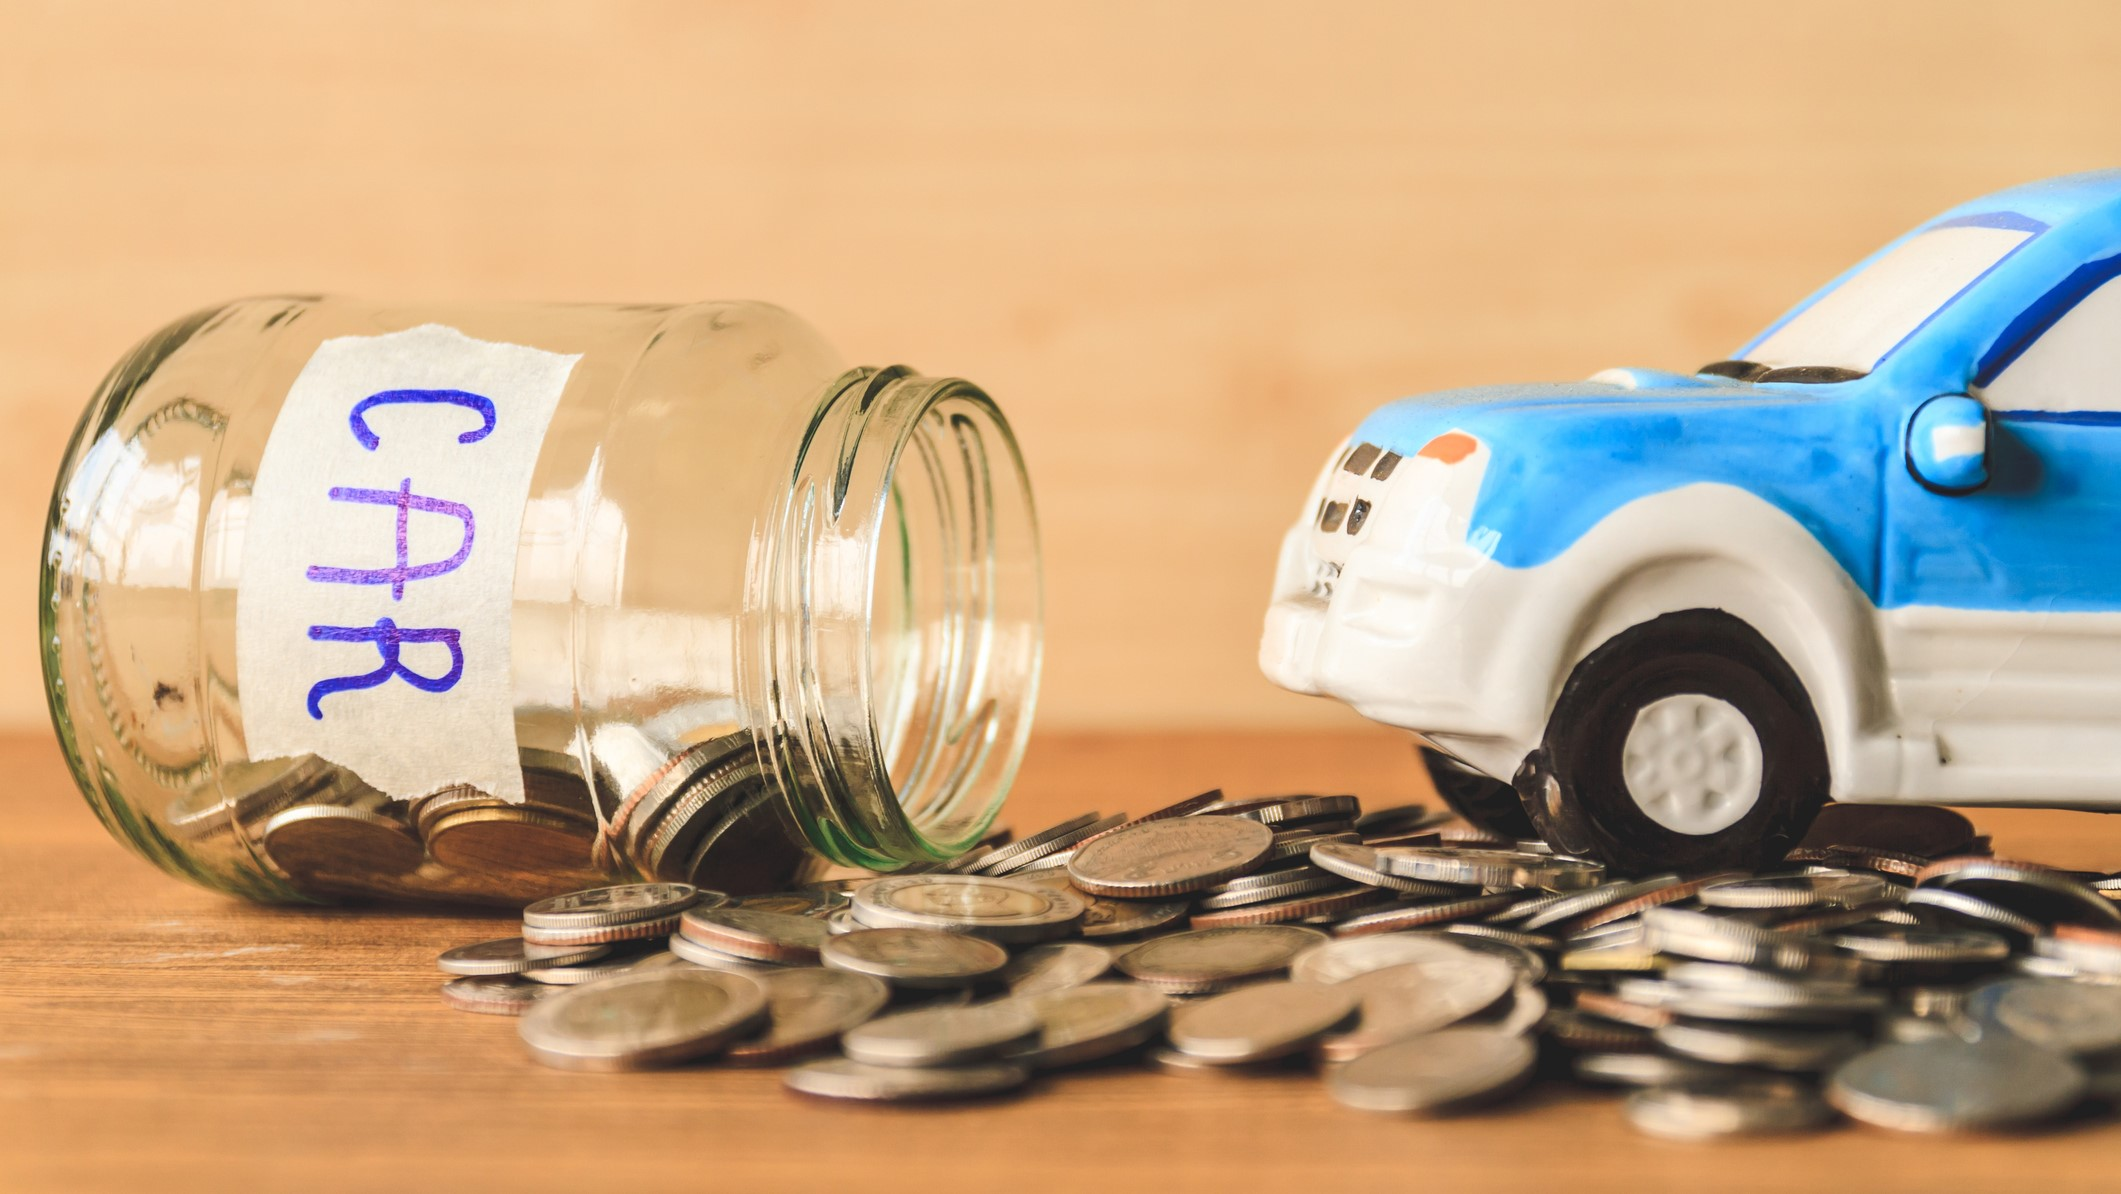 Saving money for a new car doesn't need to be a chore